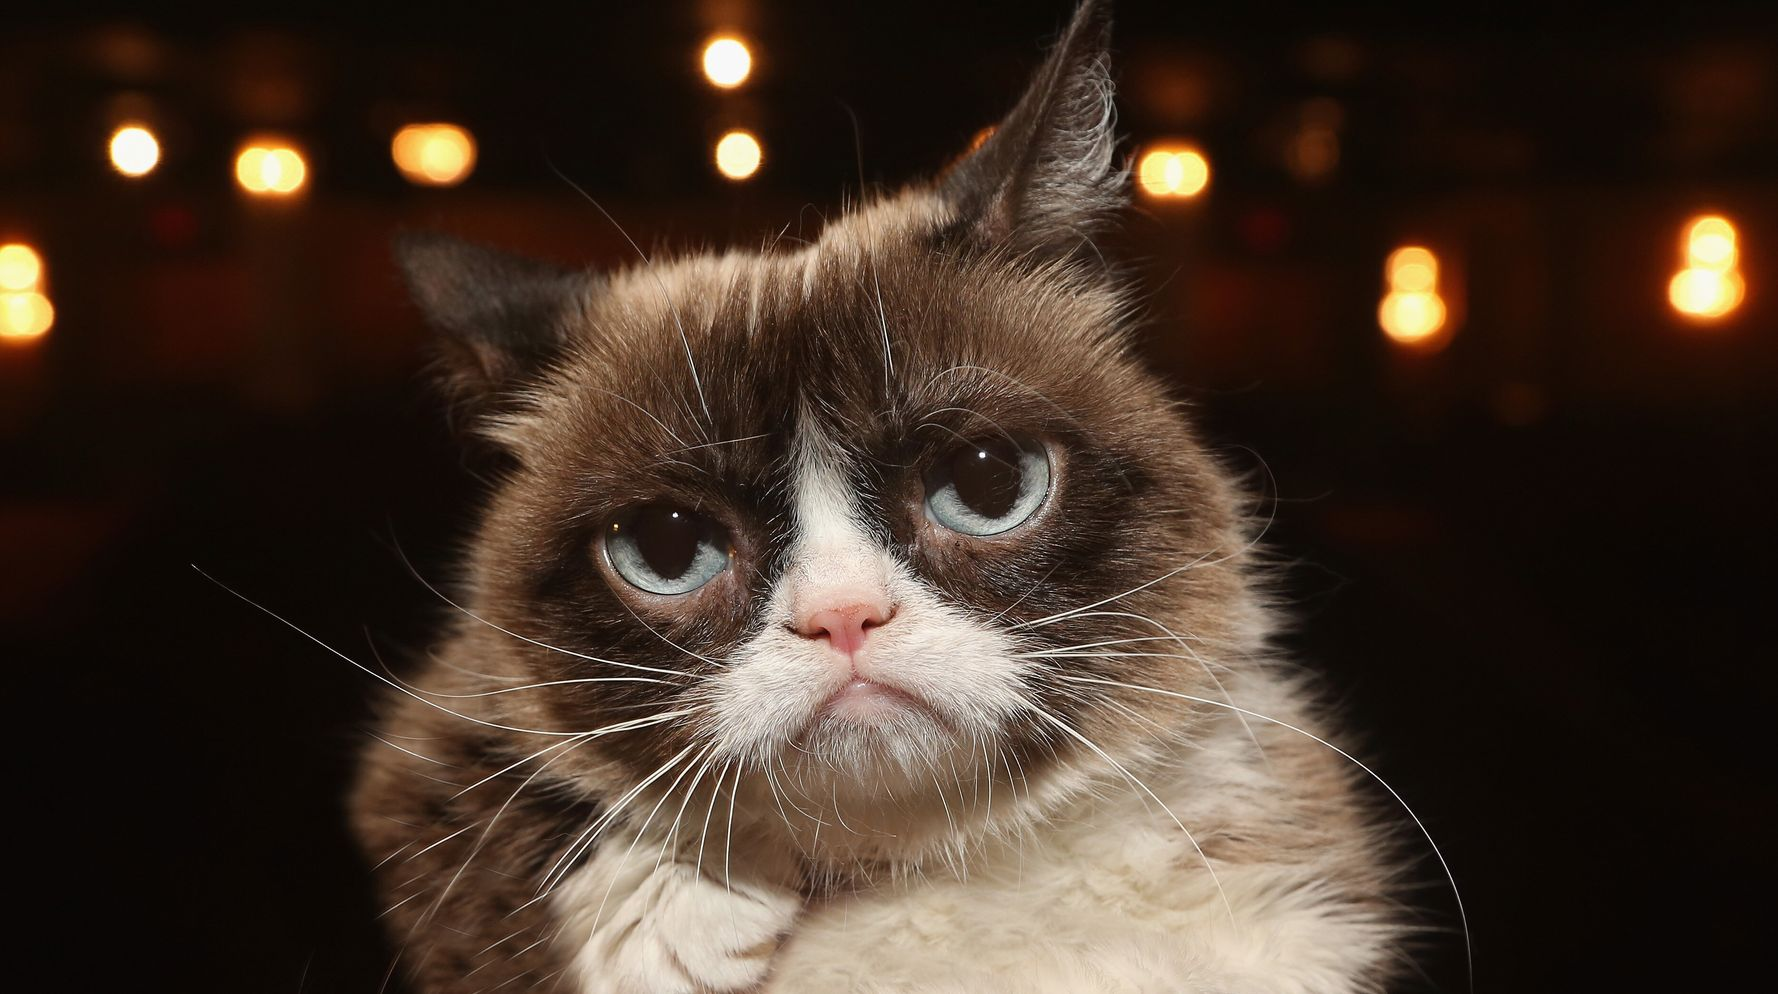 Cute Animals To End The Week: Is This Angry Fella Grumpy Cat's Protégé?